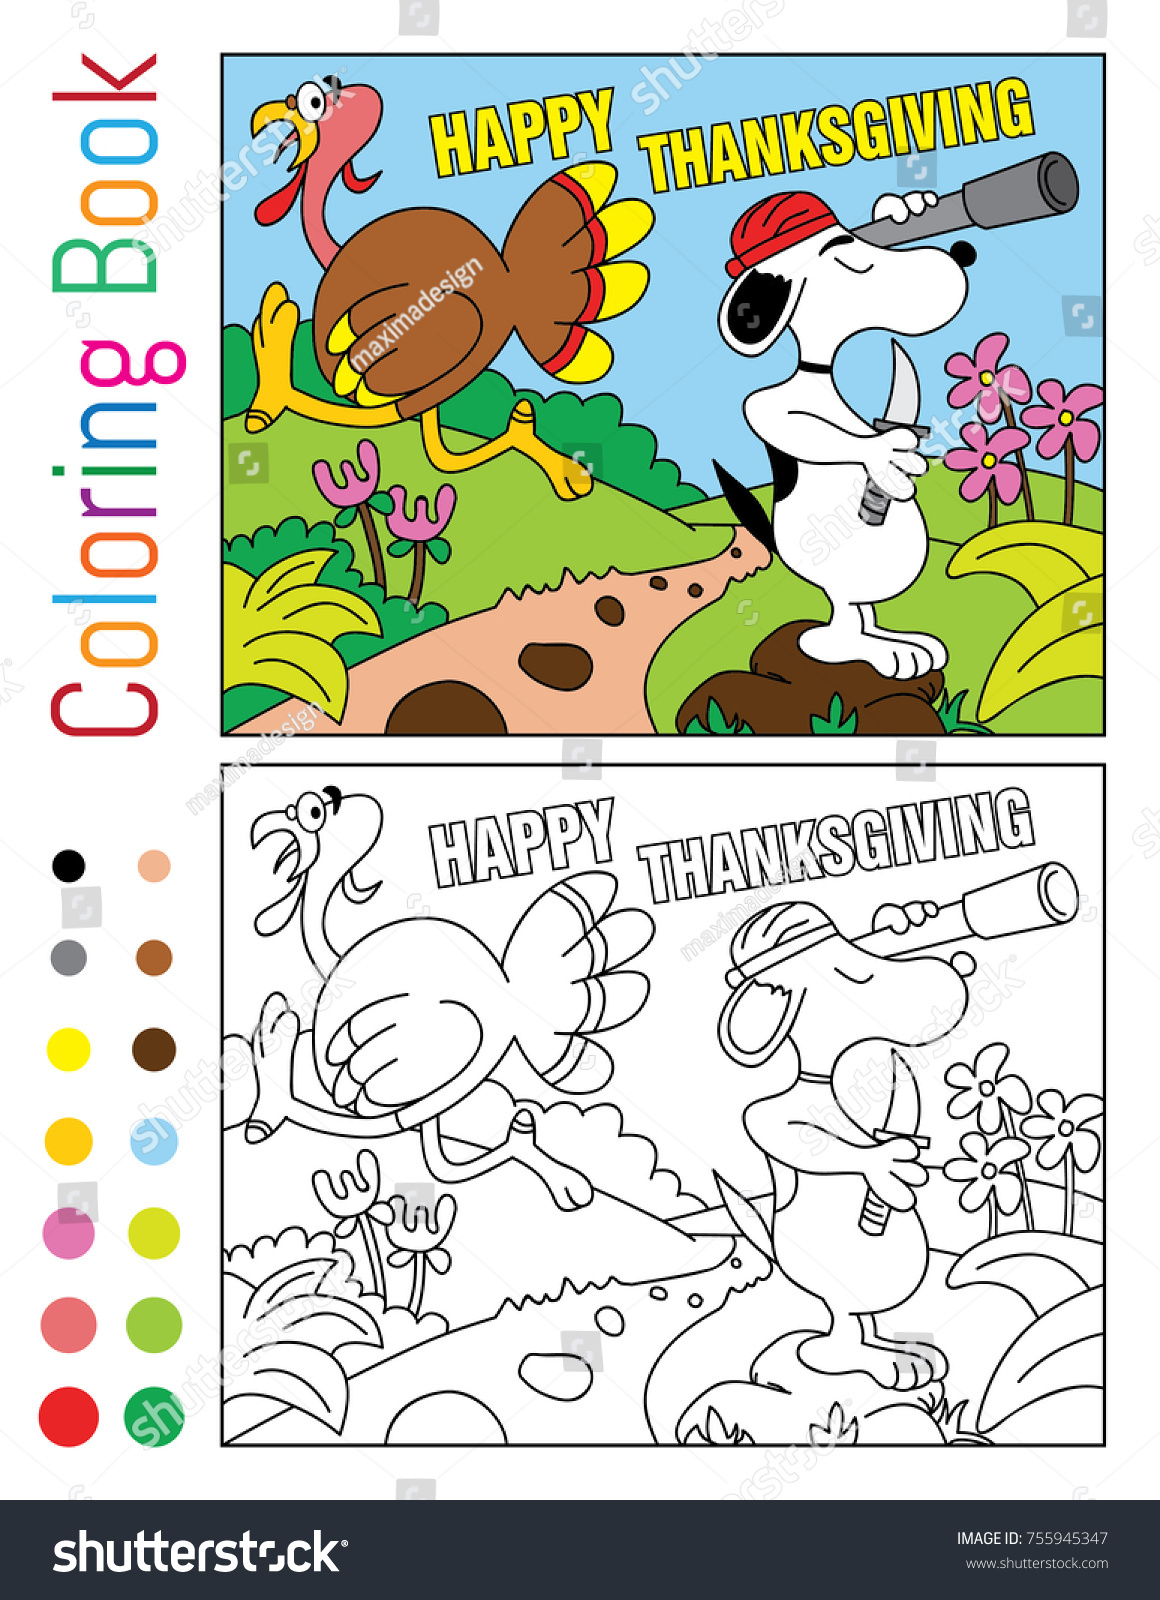 Happy Thanksgiving Coloring Book Turnkey Snoopy Stock Photo (Photo ...